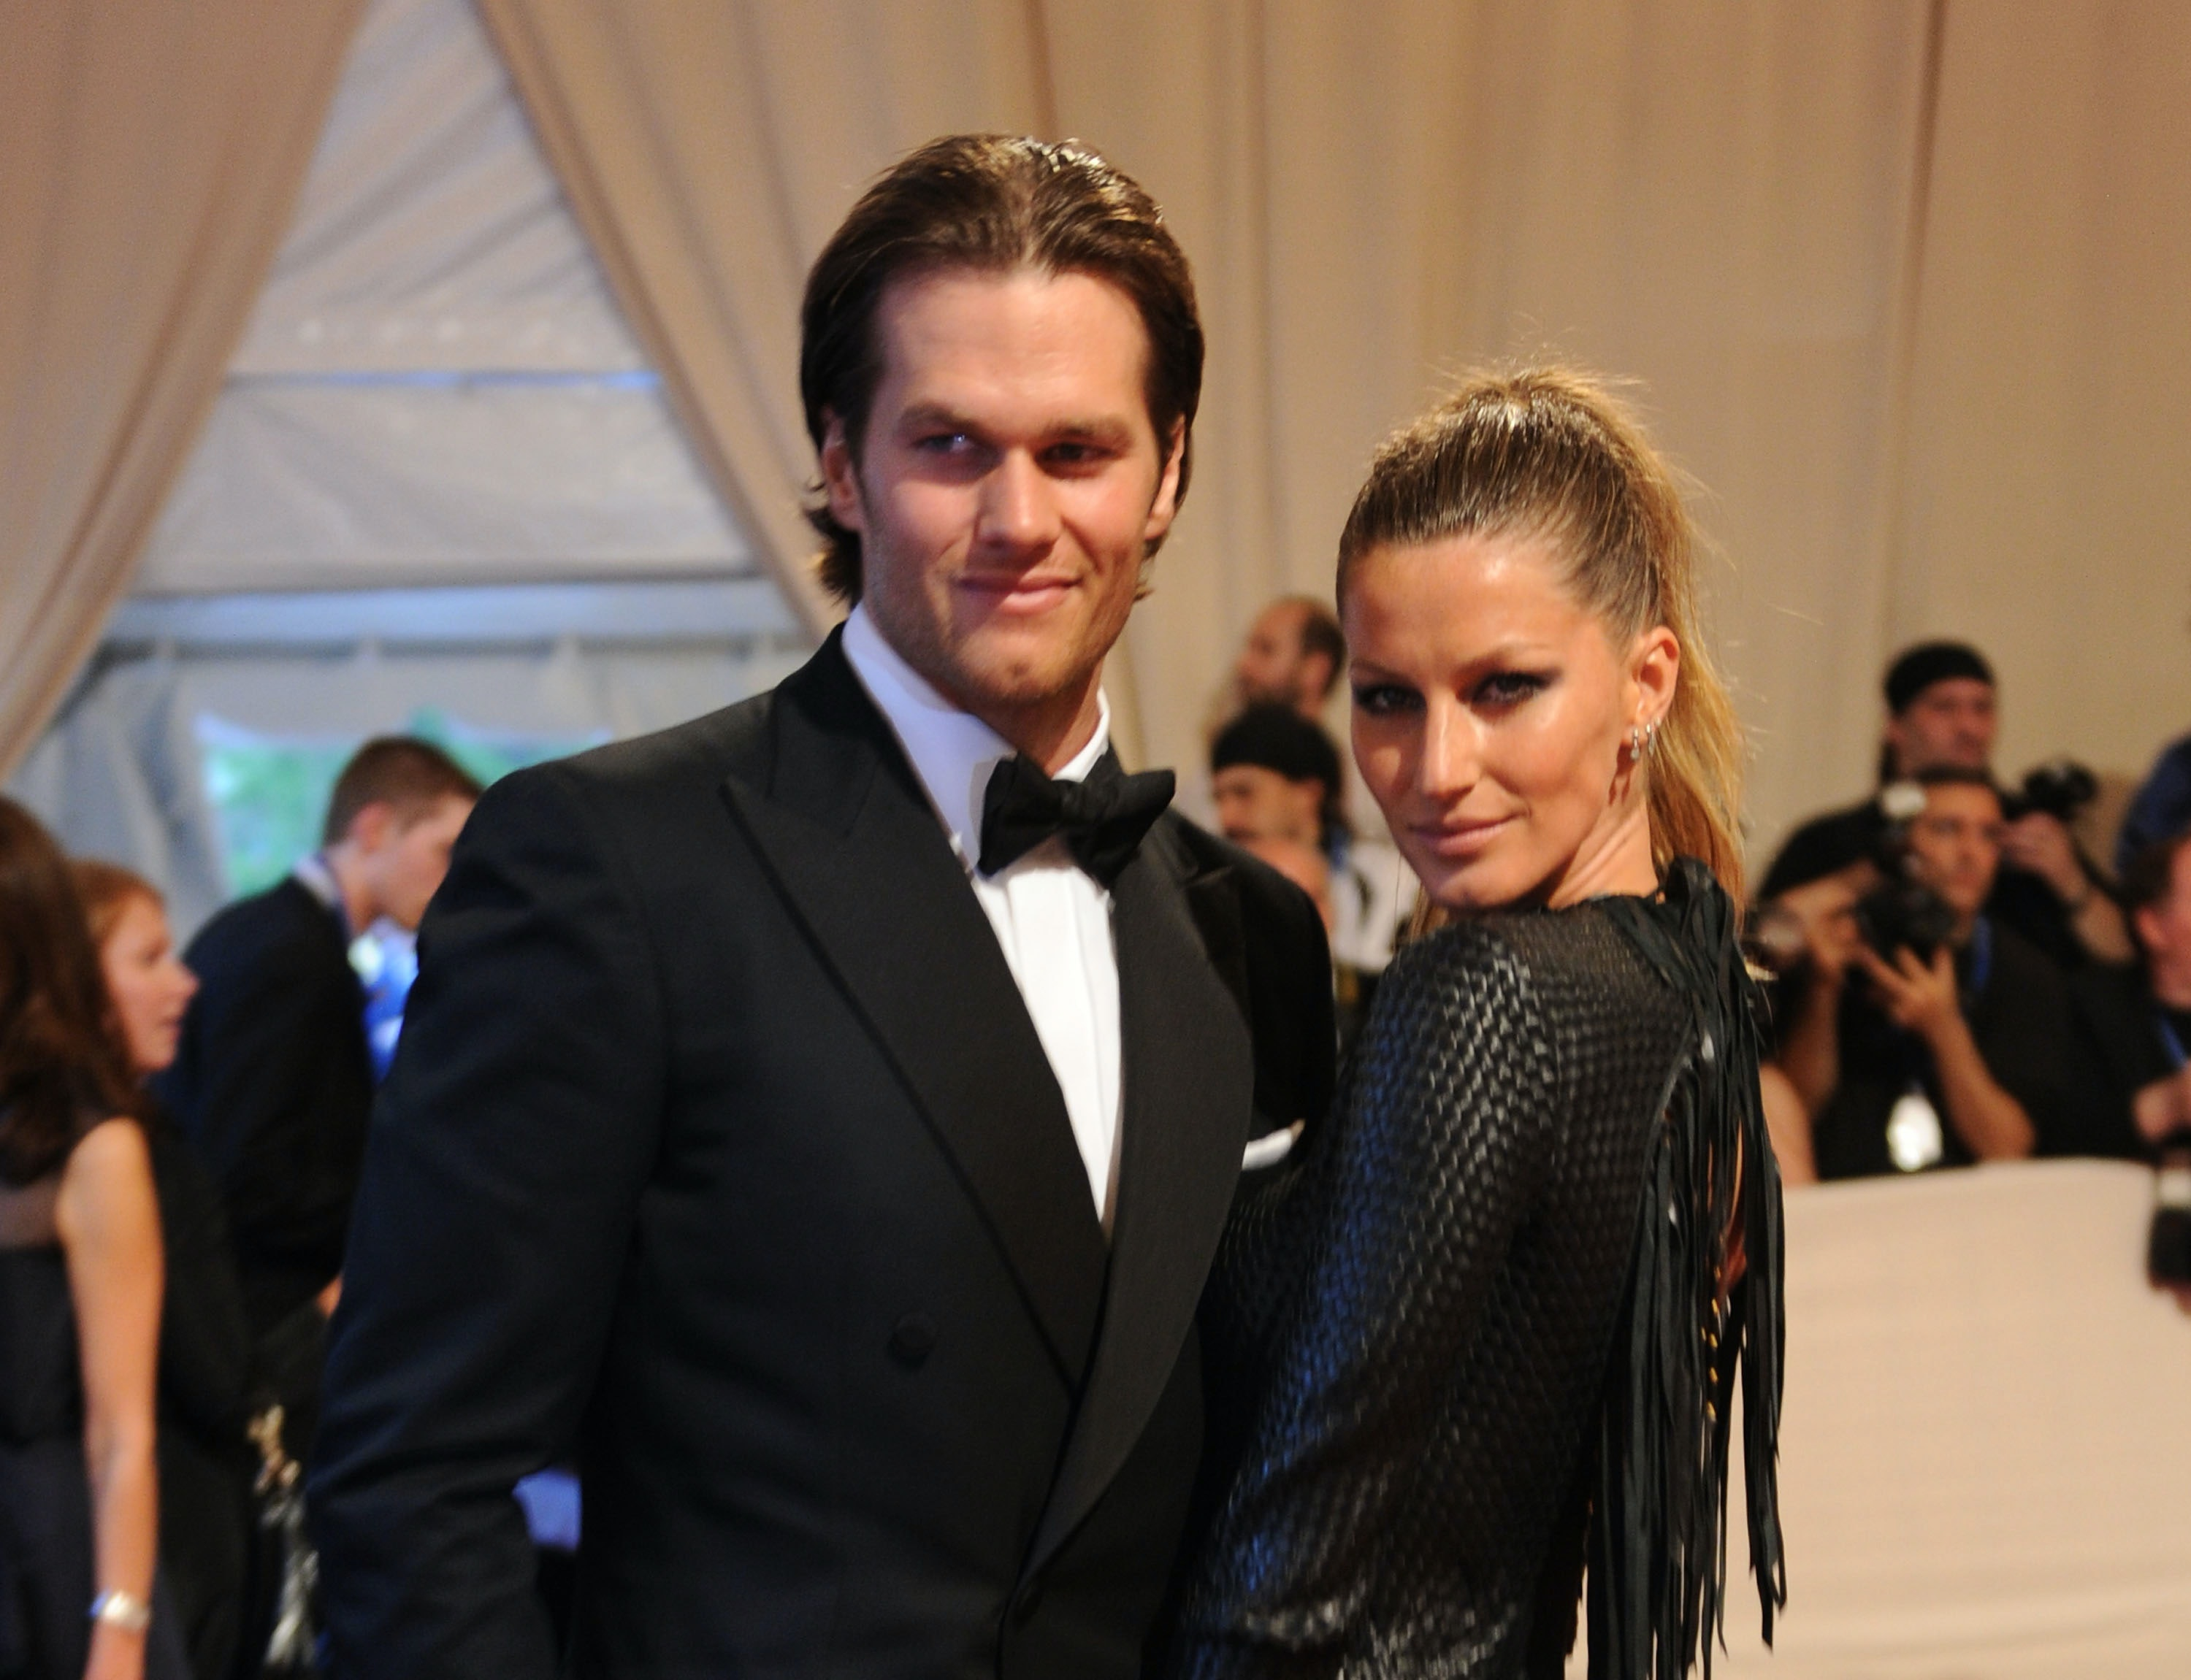 This Tom Brady & Gisele Bundchen Relationship Timeline Shows